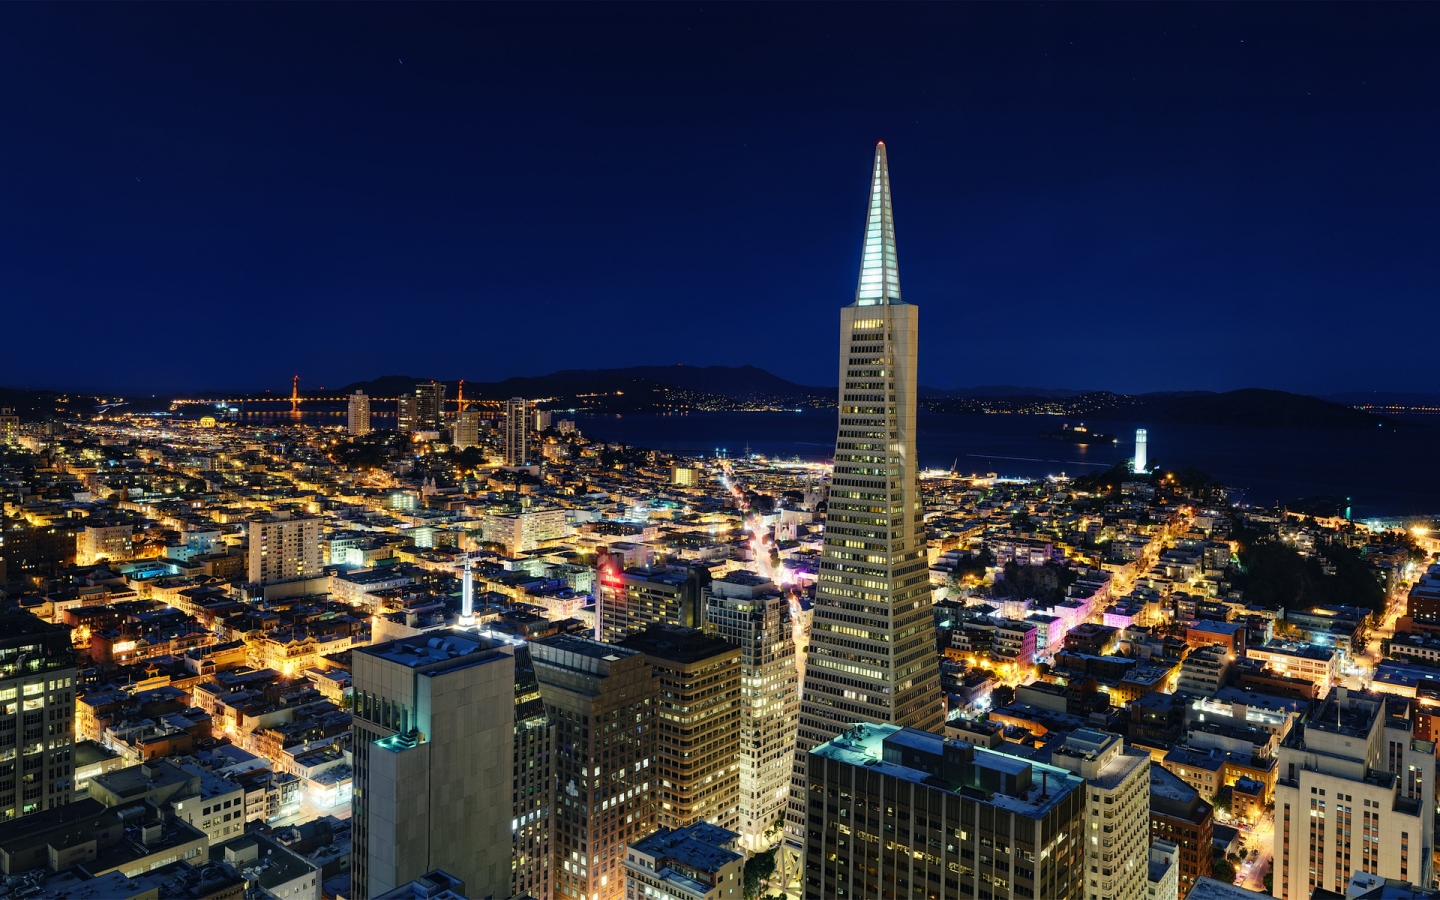 Night in San Francisco for 1440 x 900 widescreen resolution